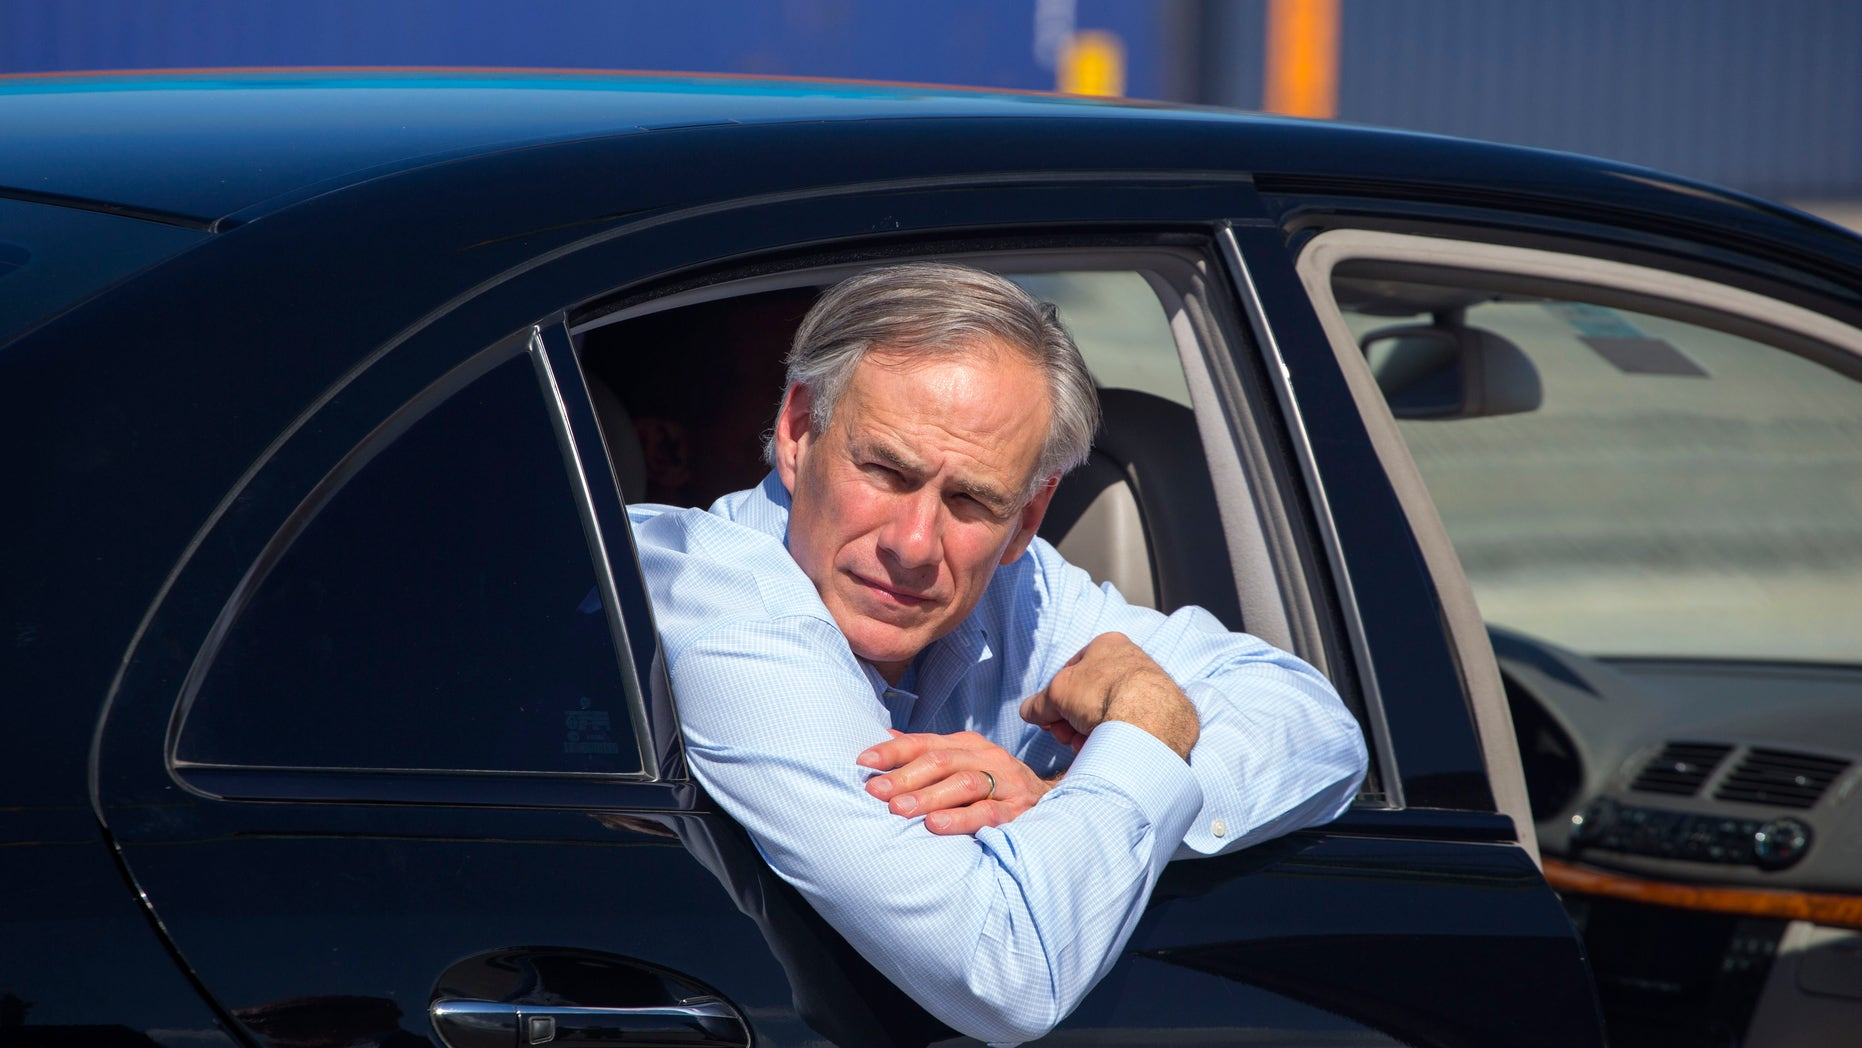 Texas Gov. Greg Abbott visits Cuba's Special Development Zone of Mariel, Dec. 1, 2015.